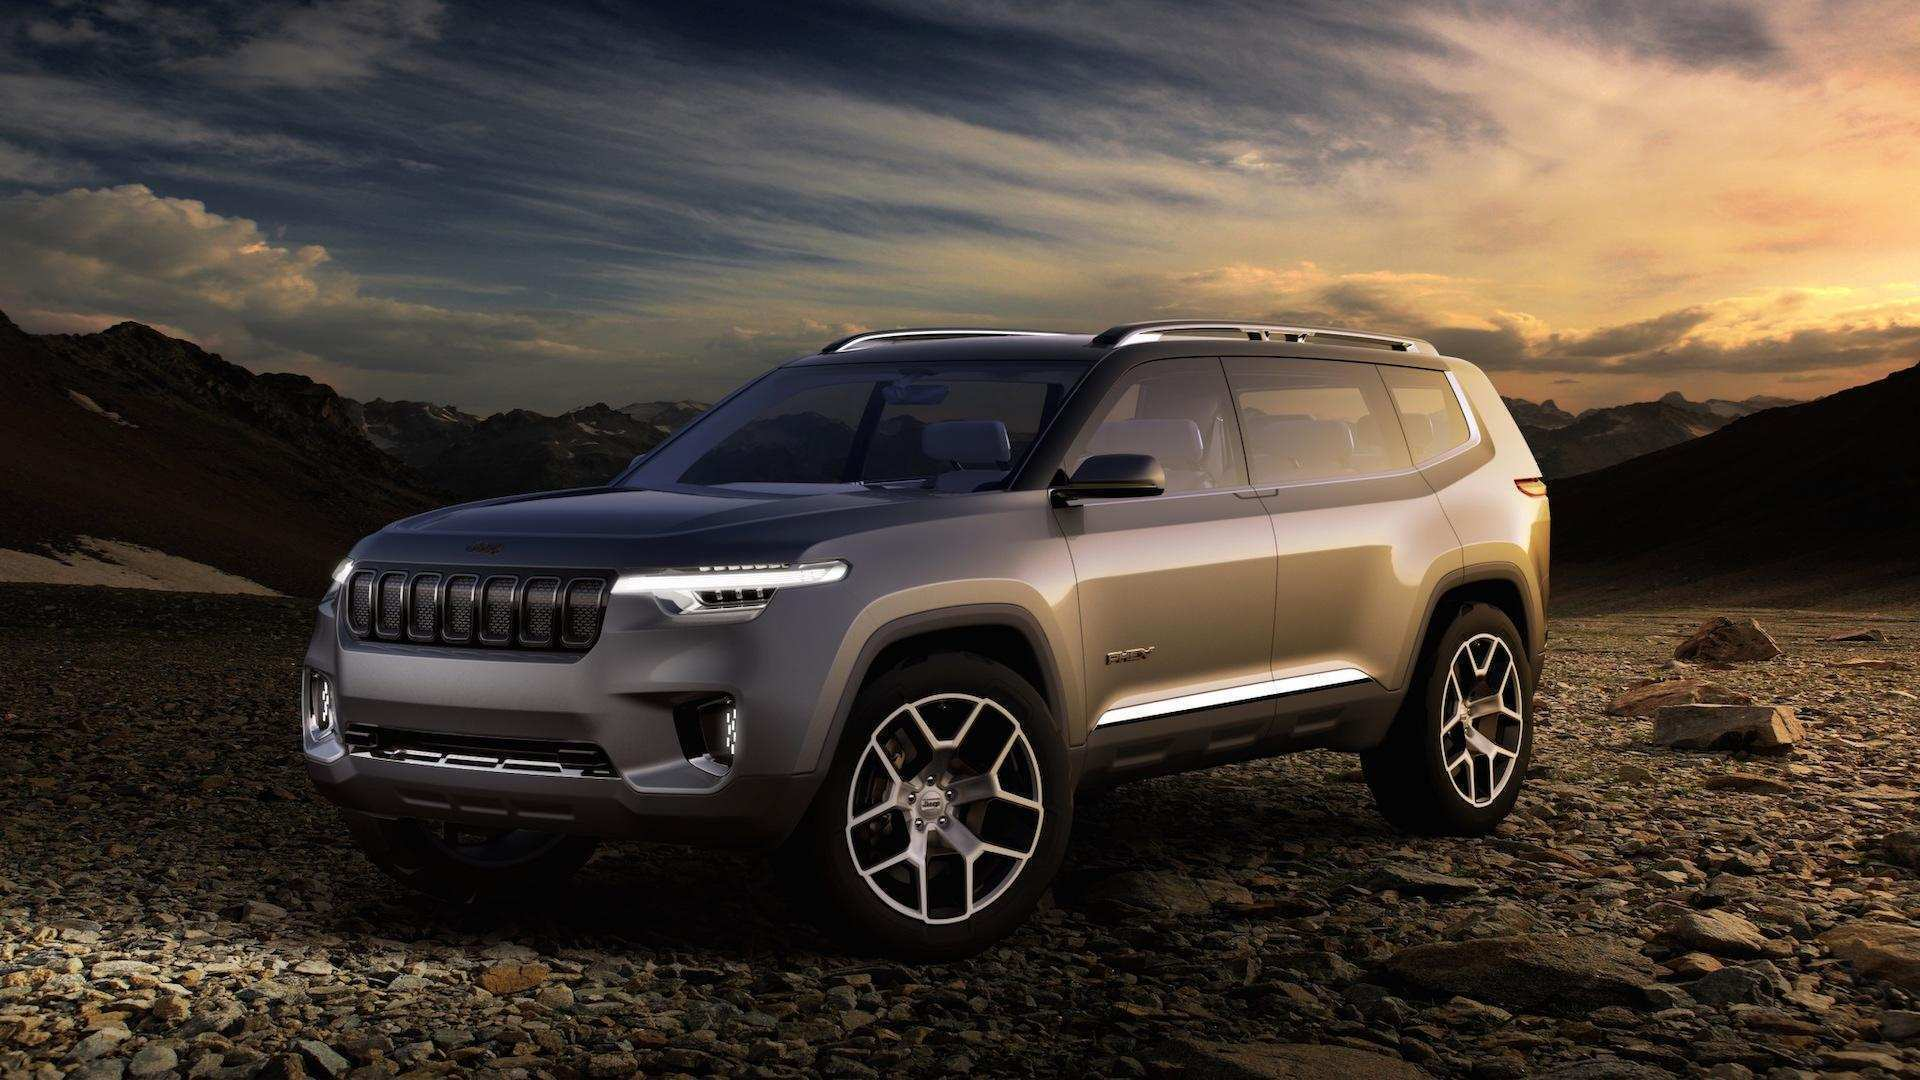 98 New Jeep Grand Cherokee 2020 Concept Review And Release Date